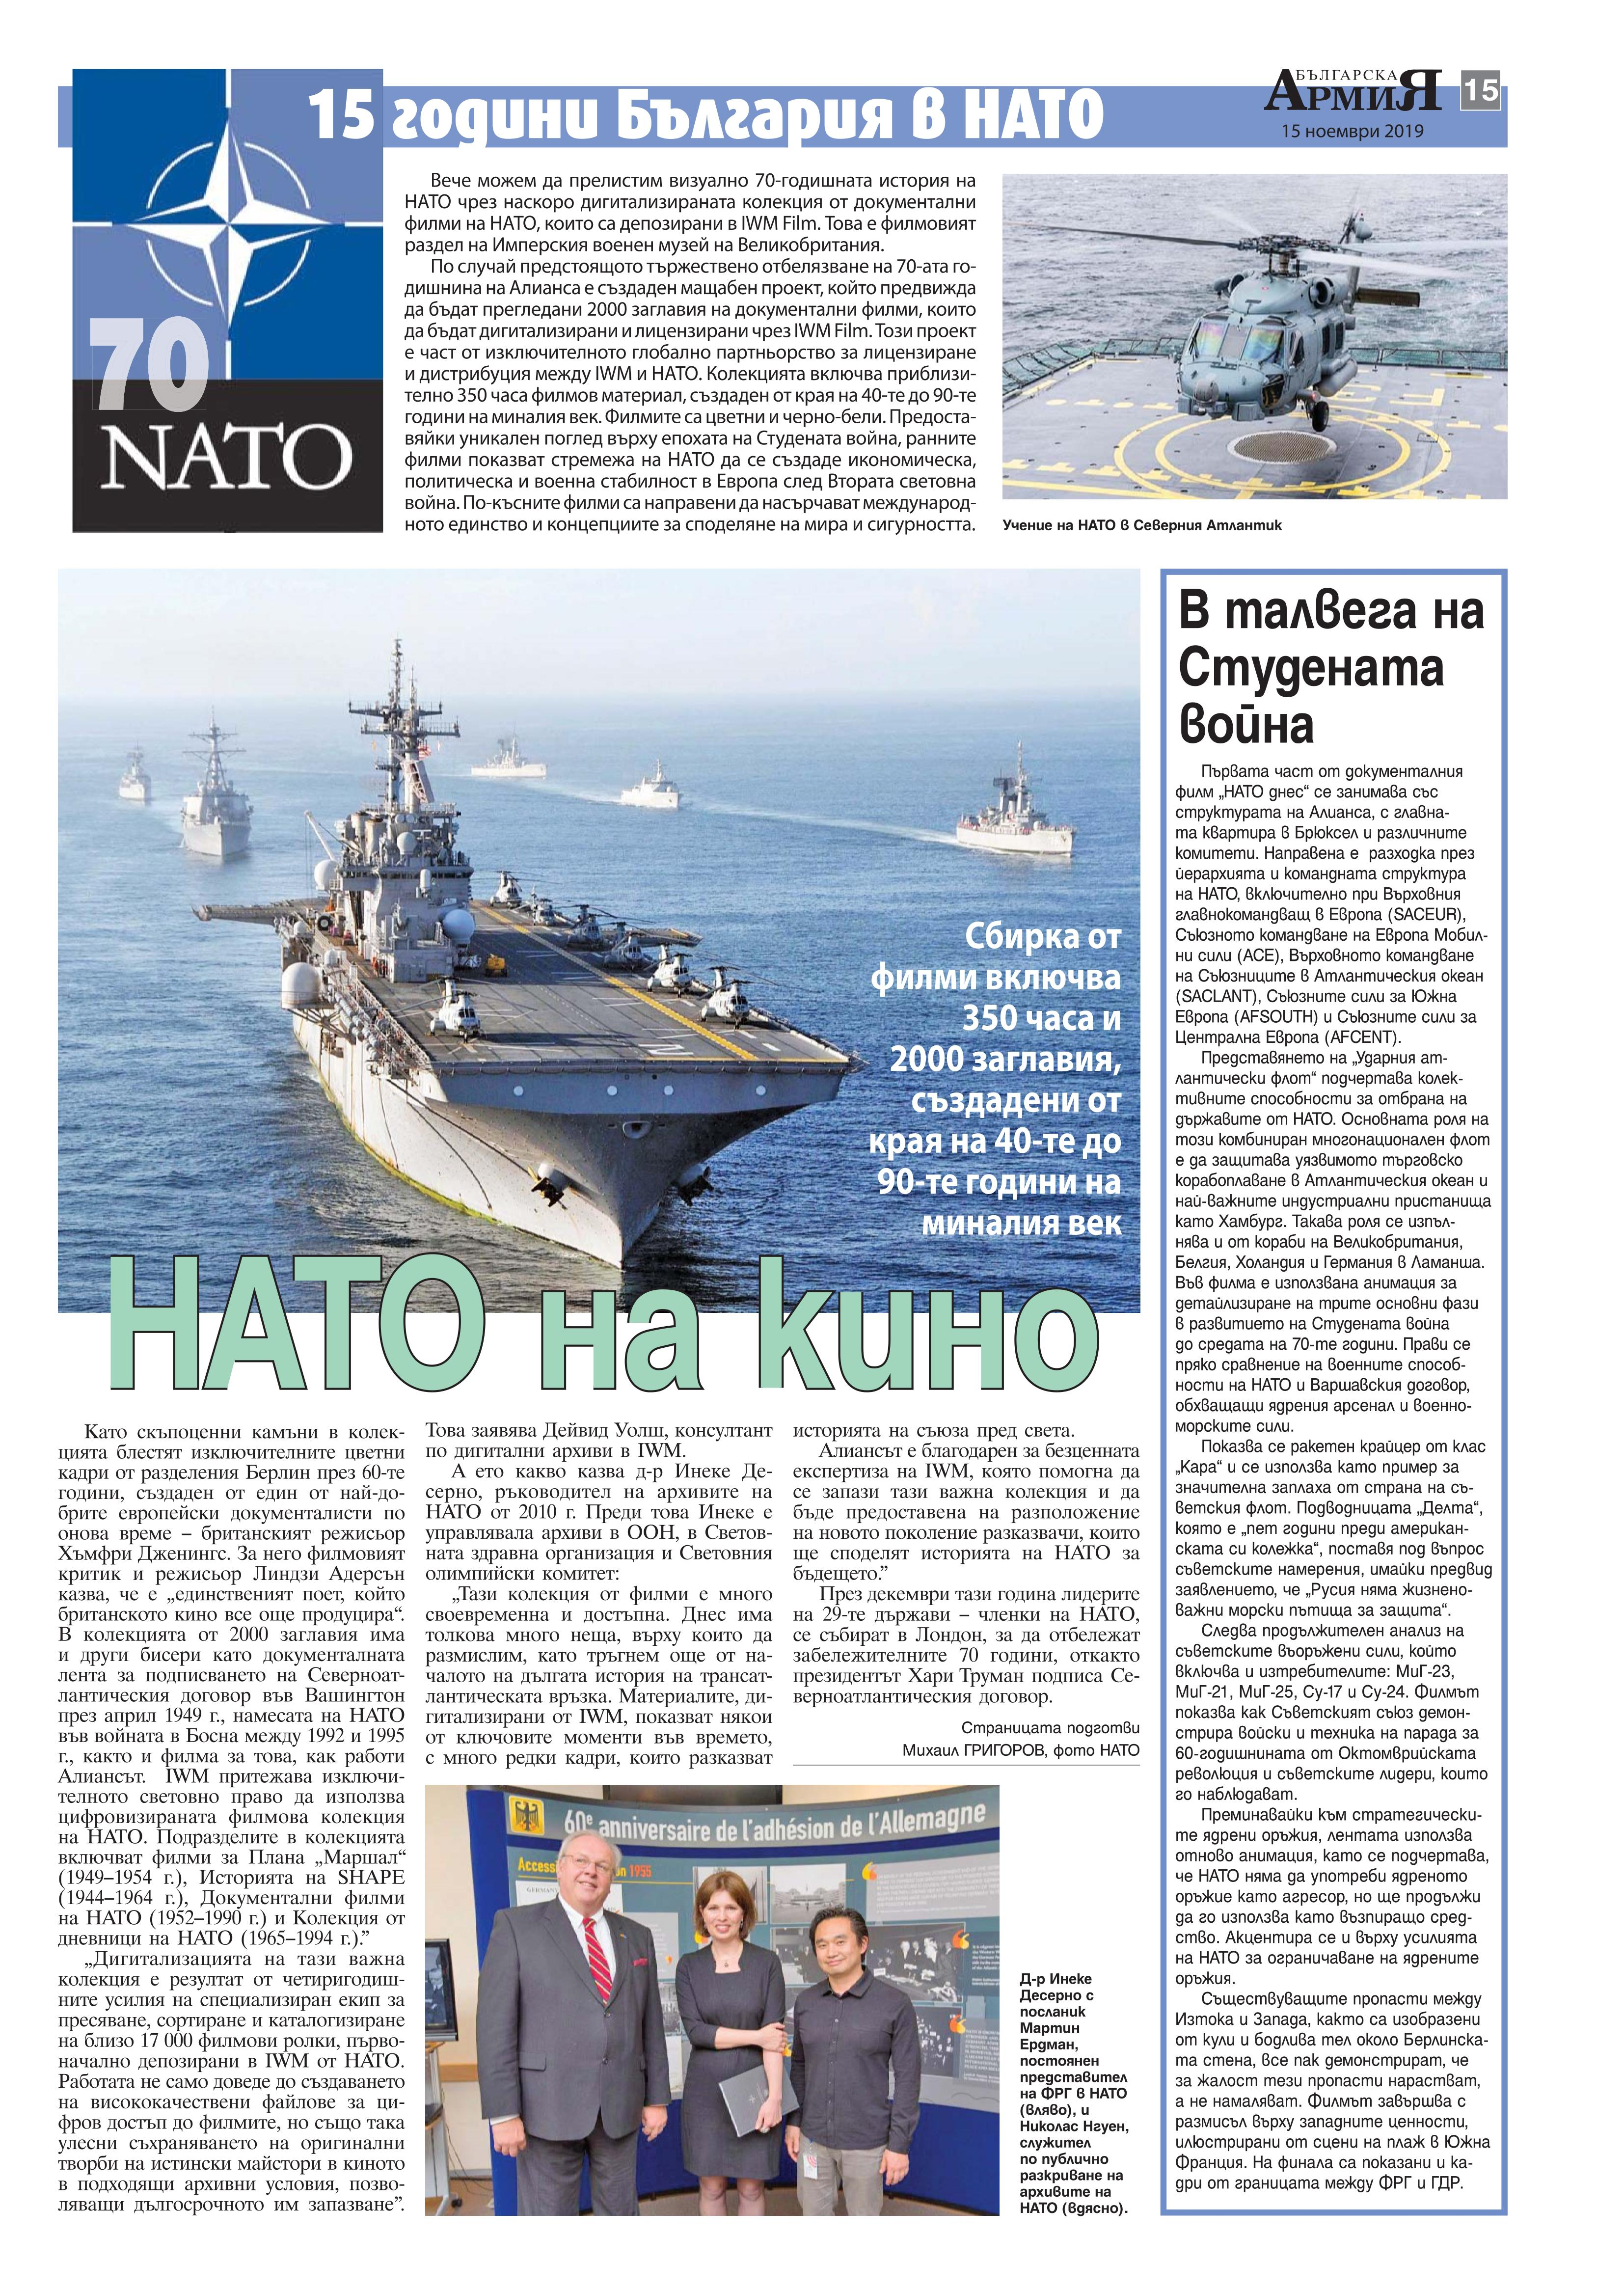 https://armymedia.bg/wp-content/uploads/2015/06/15.page1_-116.jpg